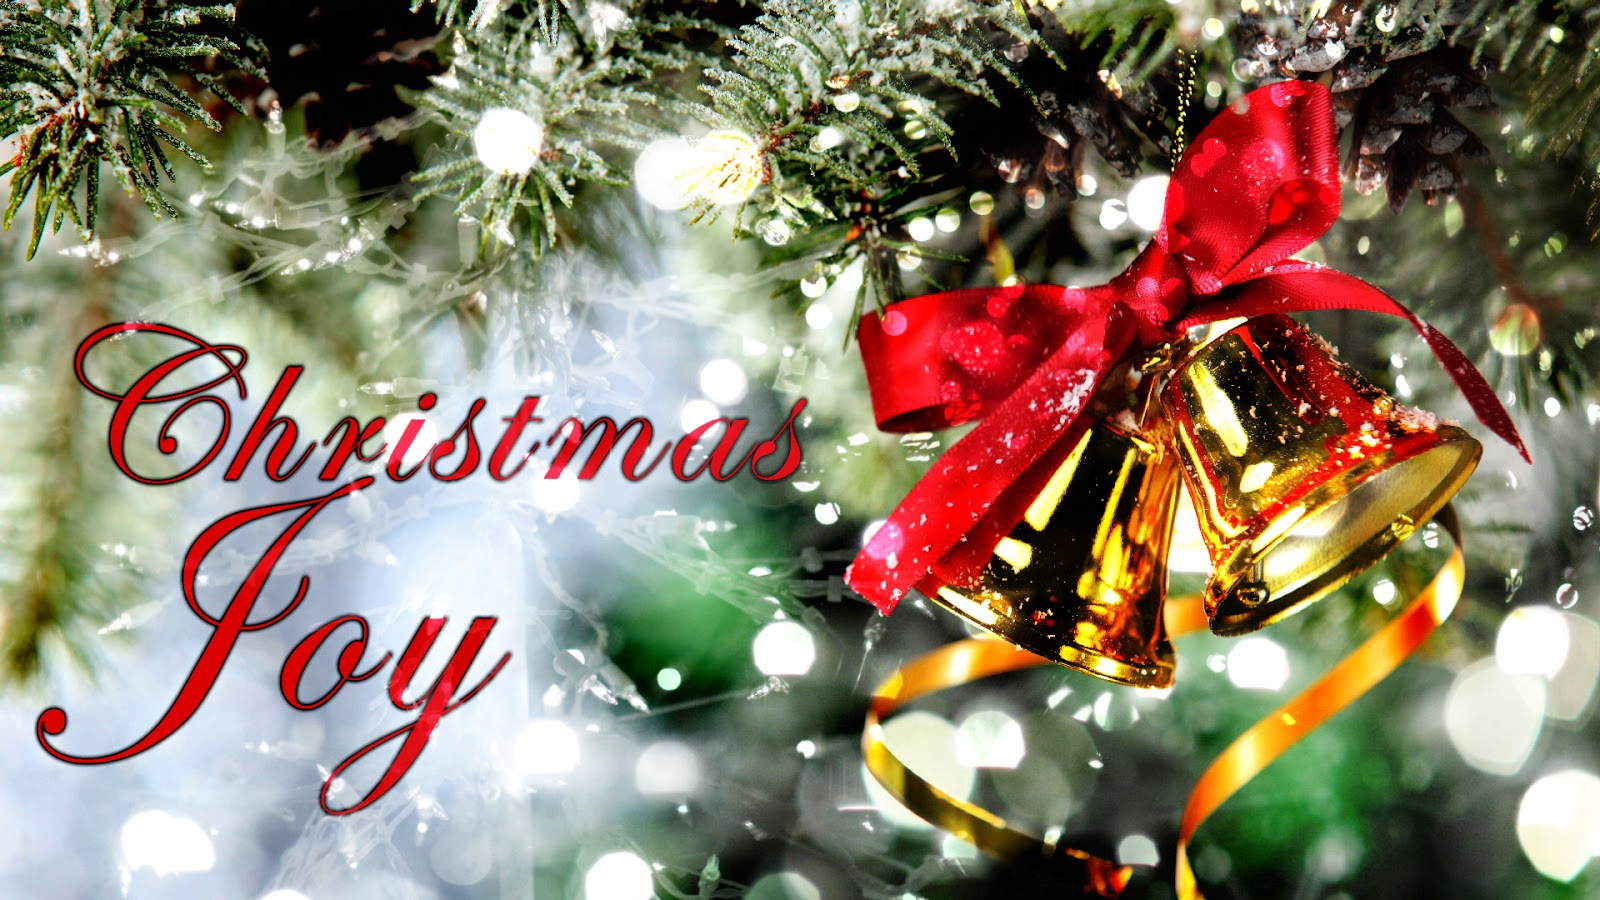 Christmas-bell-hd-wallpapers-for-facebook-sharing-desktop-pc-free-download.jpg